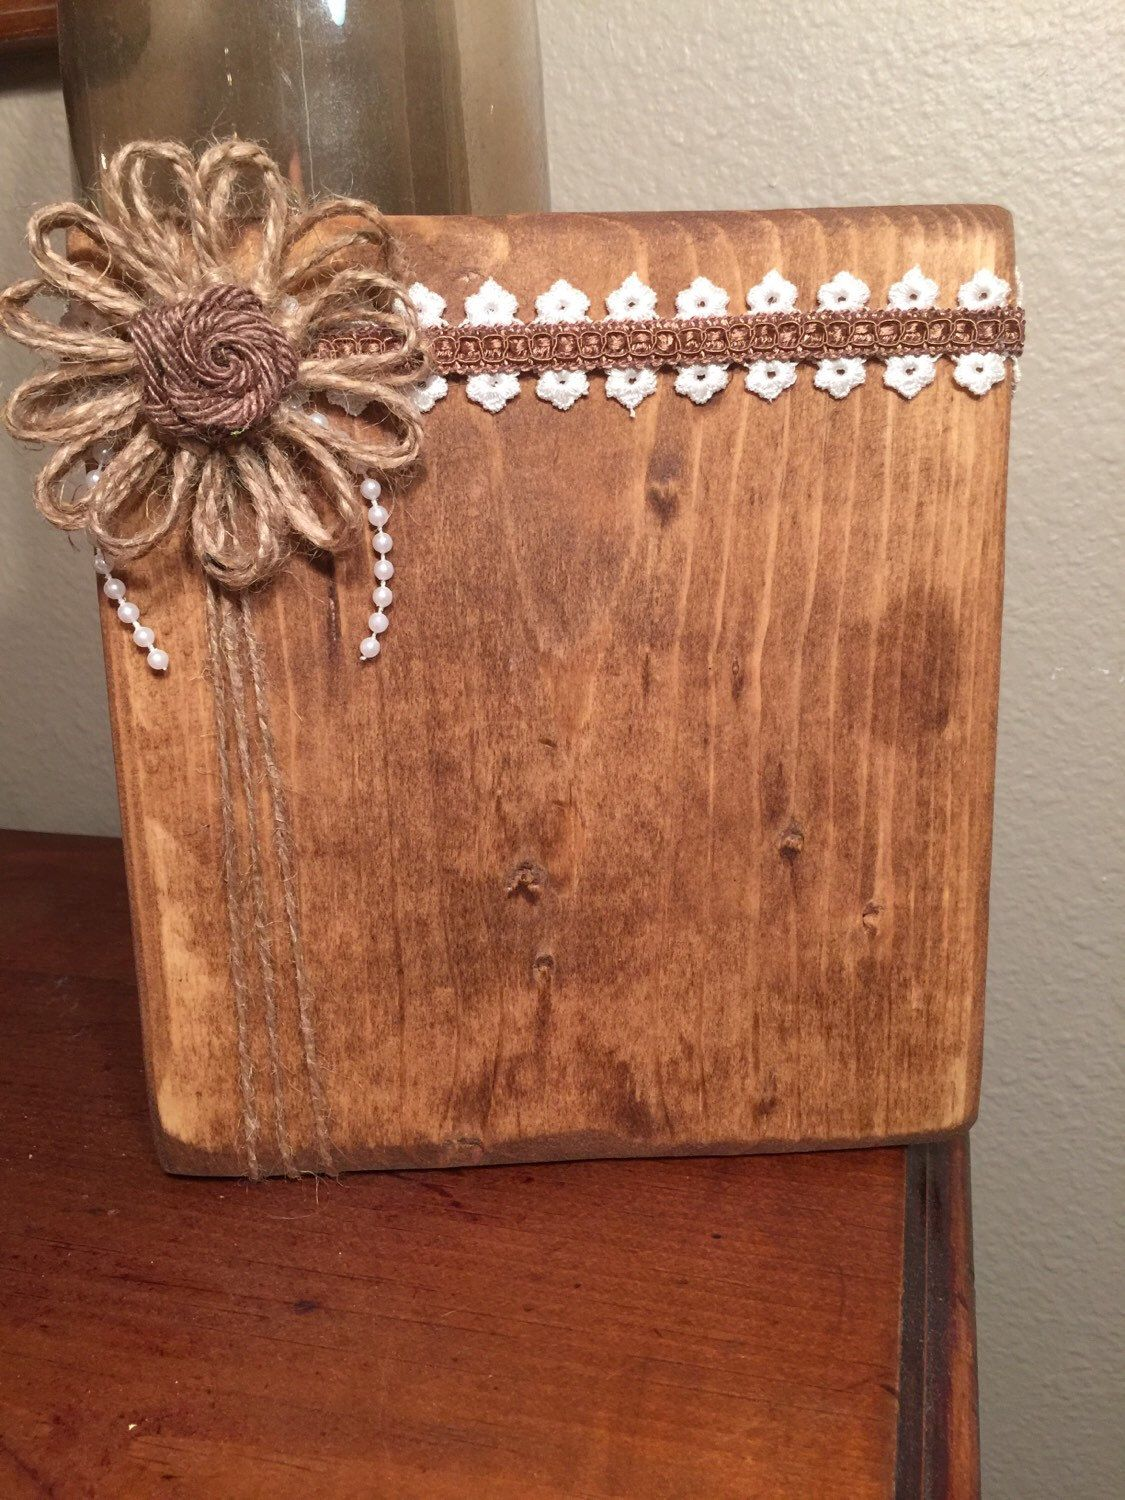 Rustic Wooden Decor Pin By Debdebscrafts On Debdebs Crafts Marcos